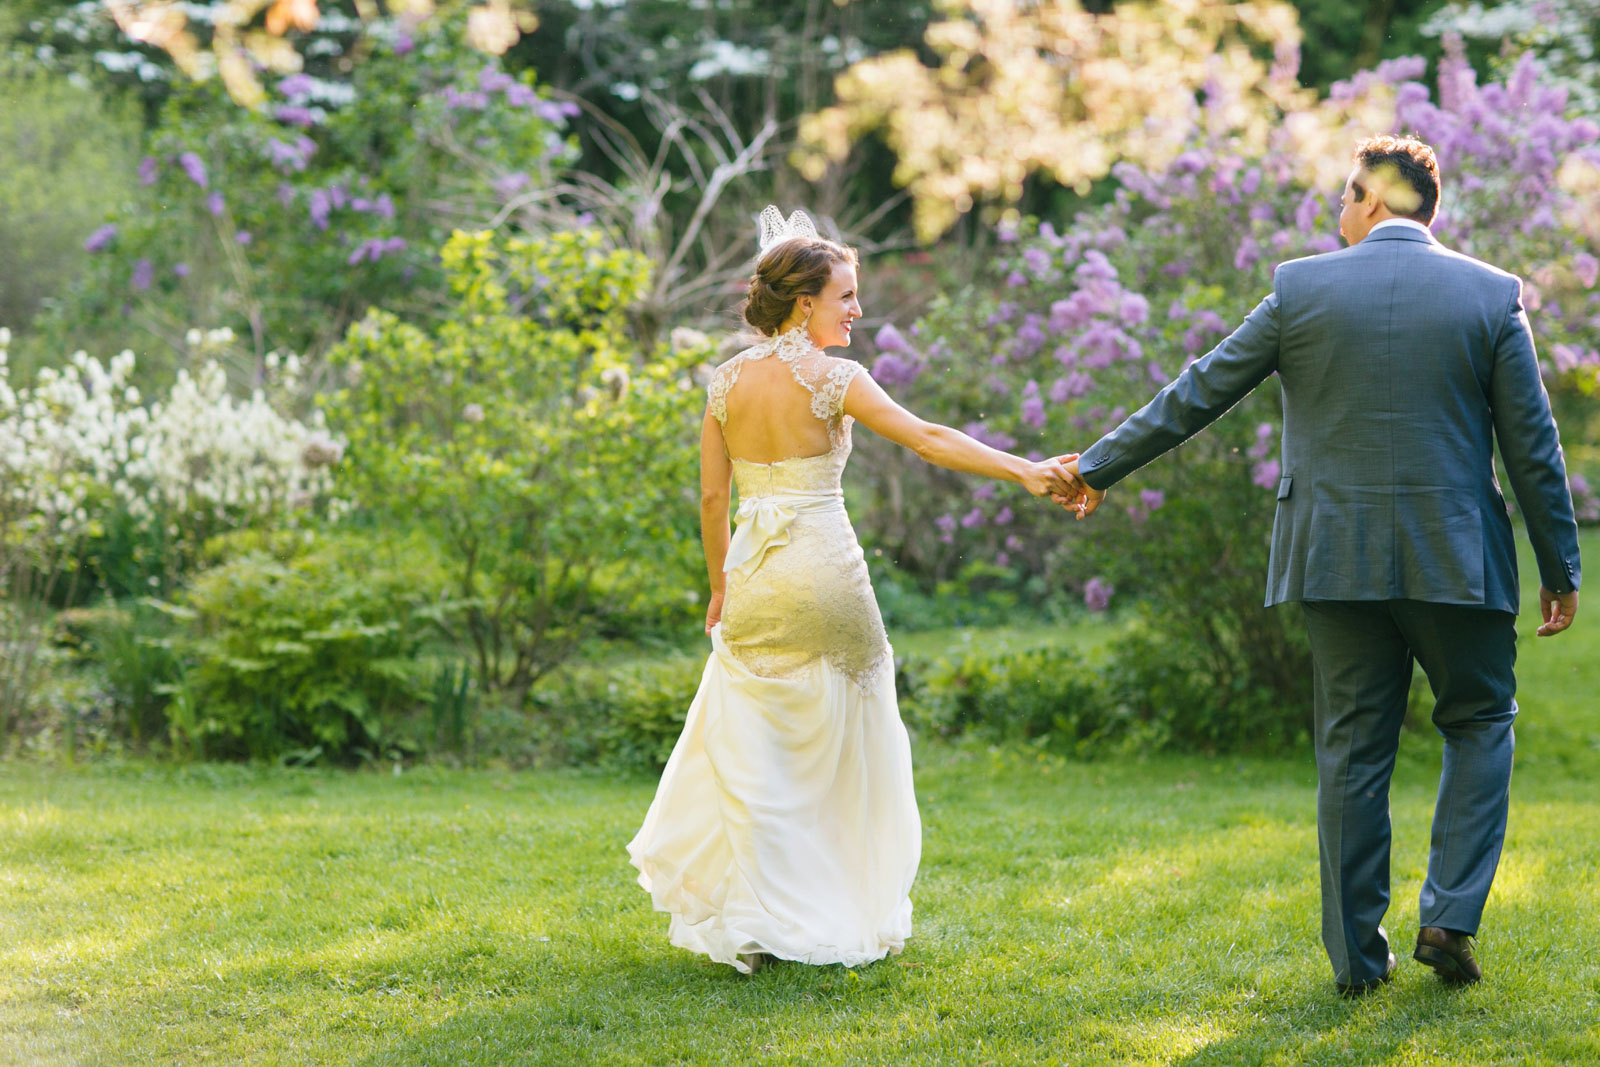 bride and groom holding hands as they walk through gardens during golden hour light